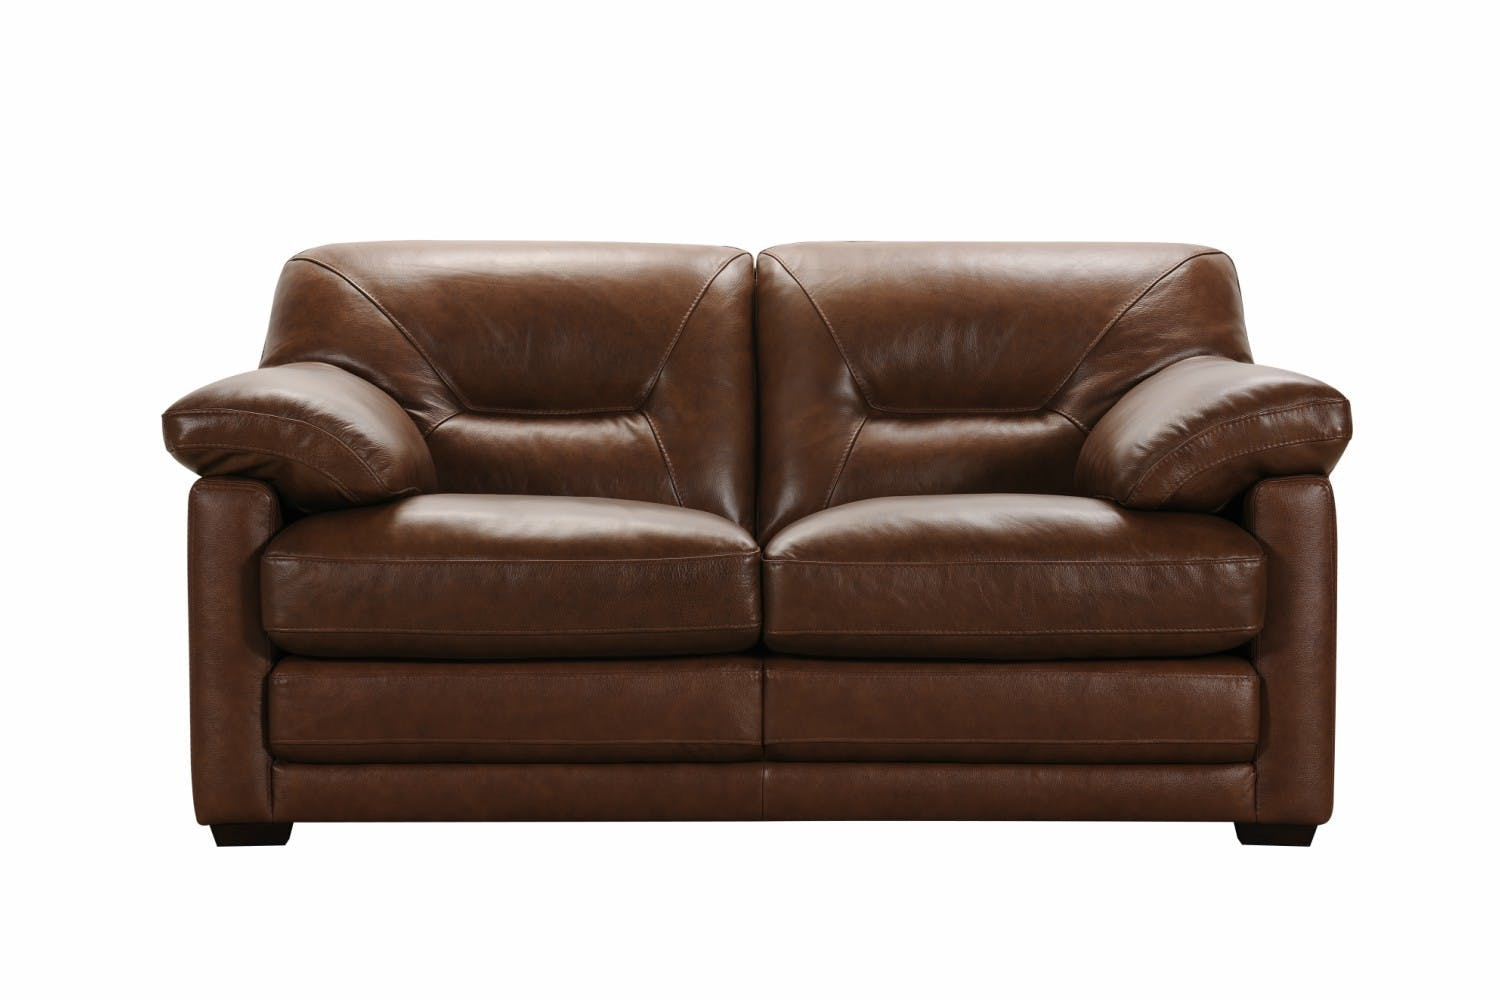 Jaycee 2 Seater | 10 Colour Options